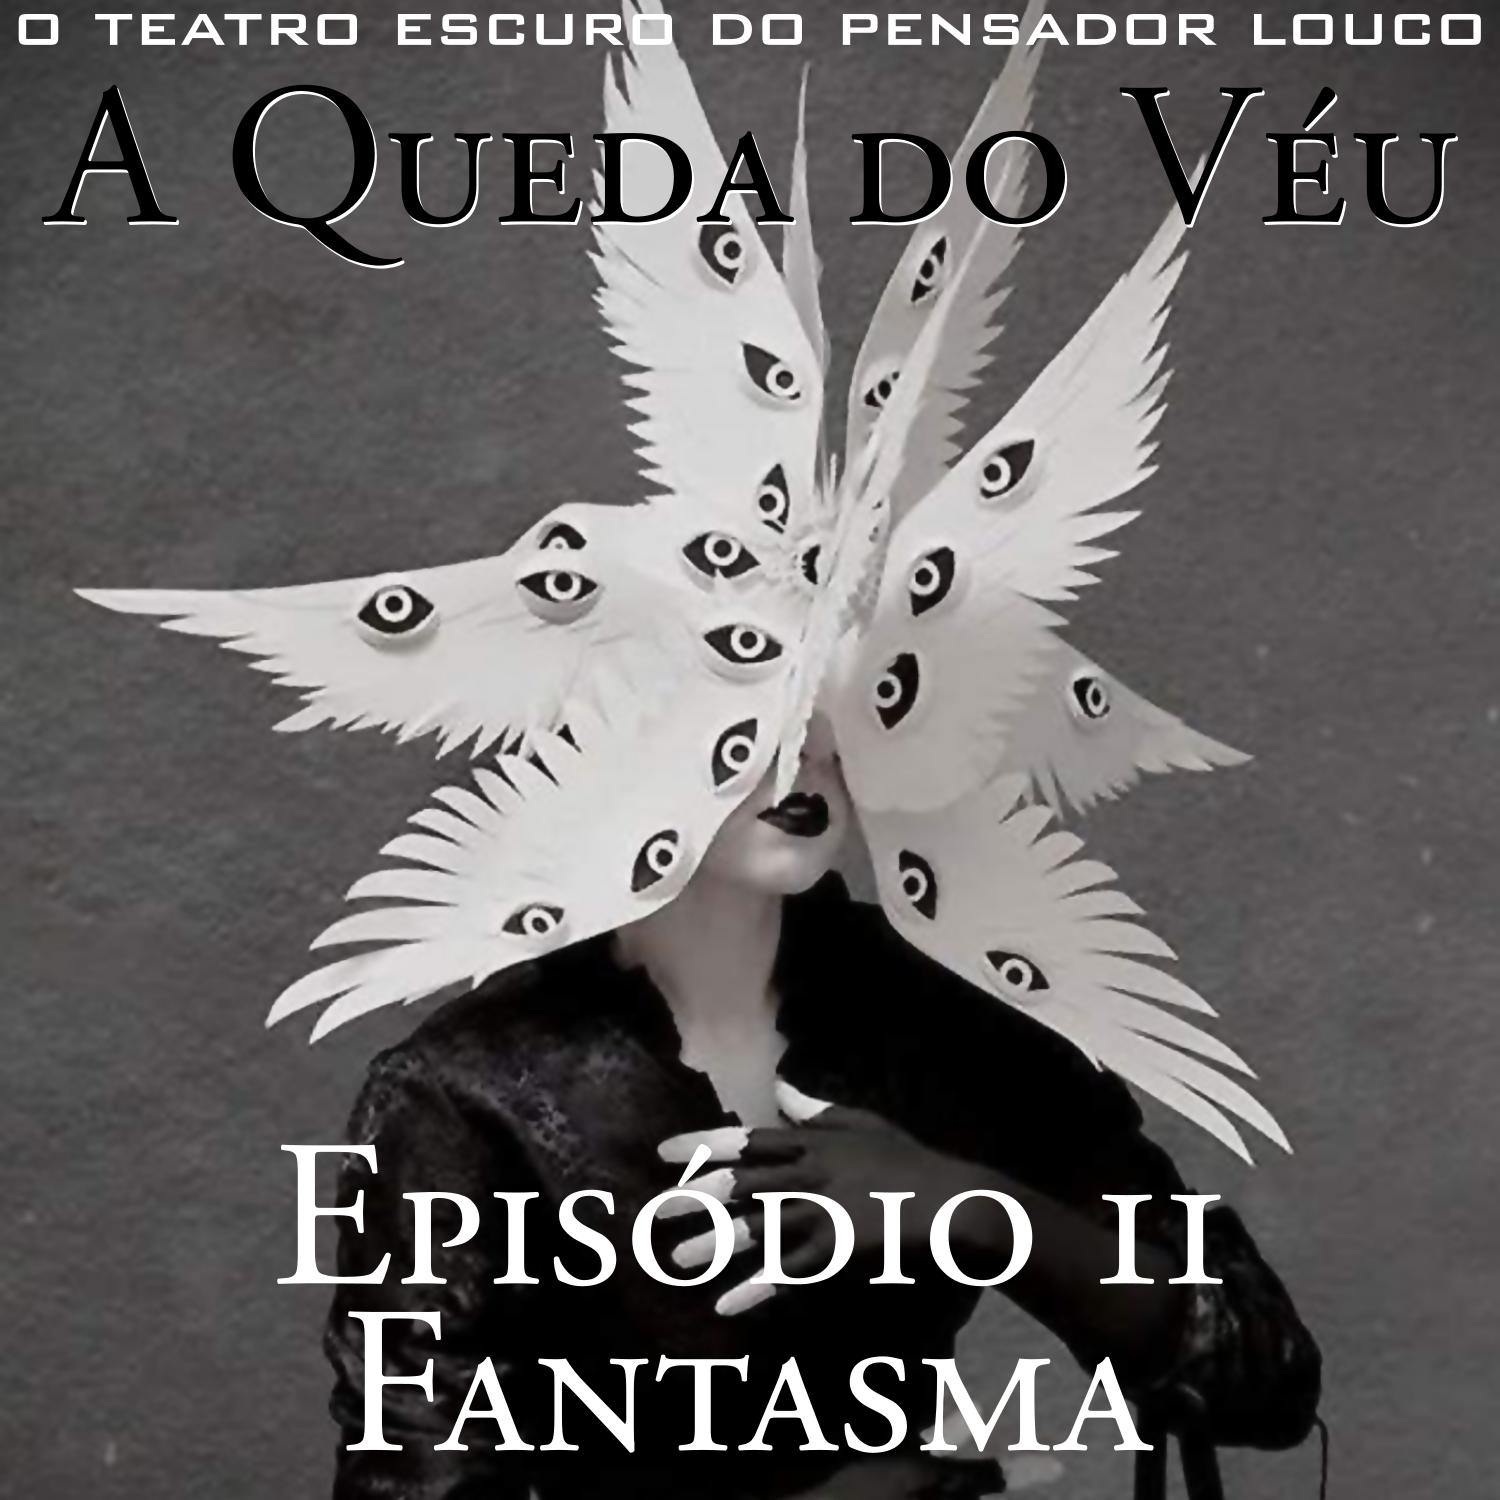 A Queda do Véu 11 - Fantasma